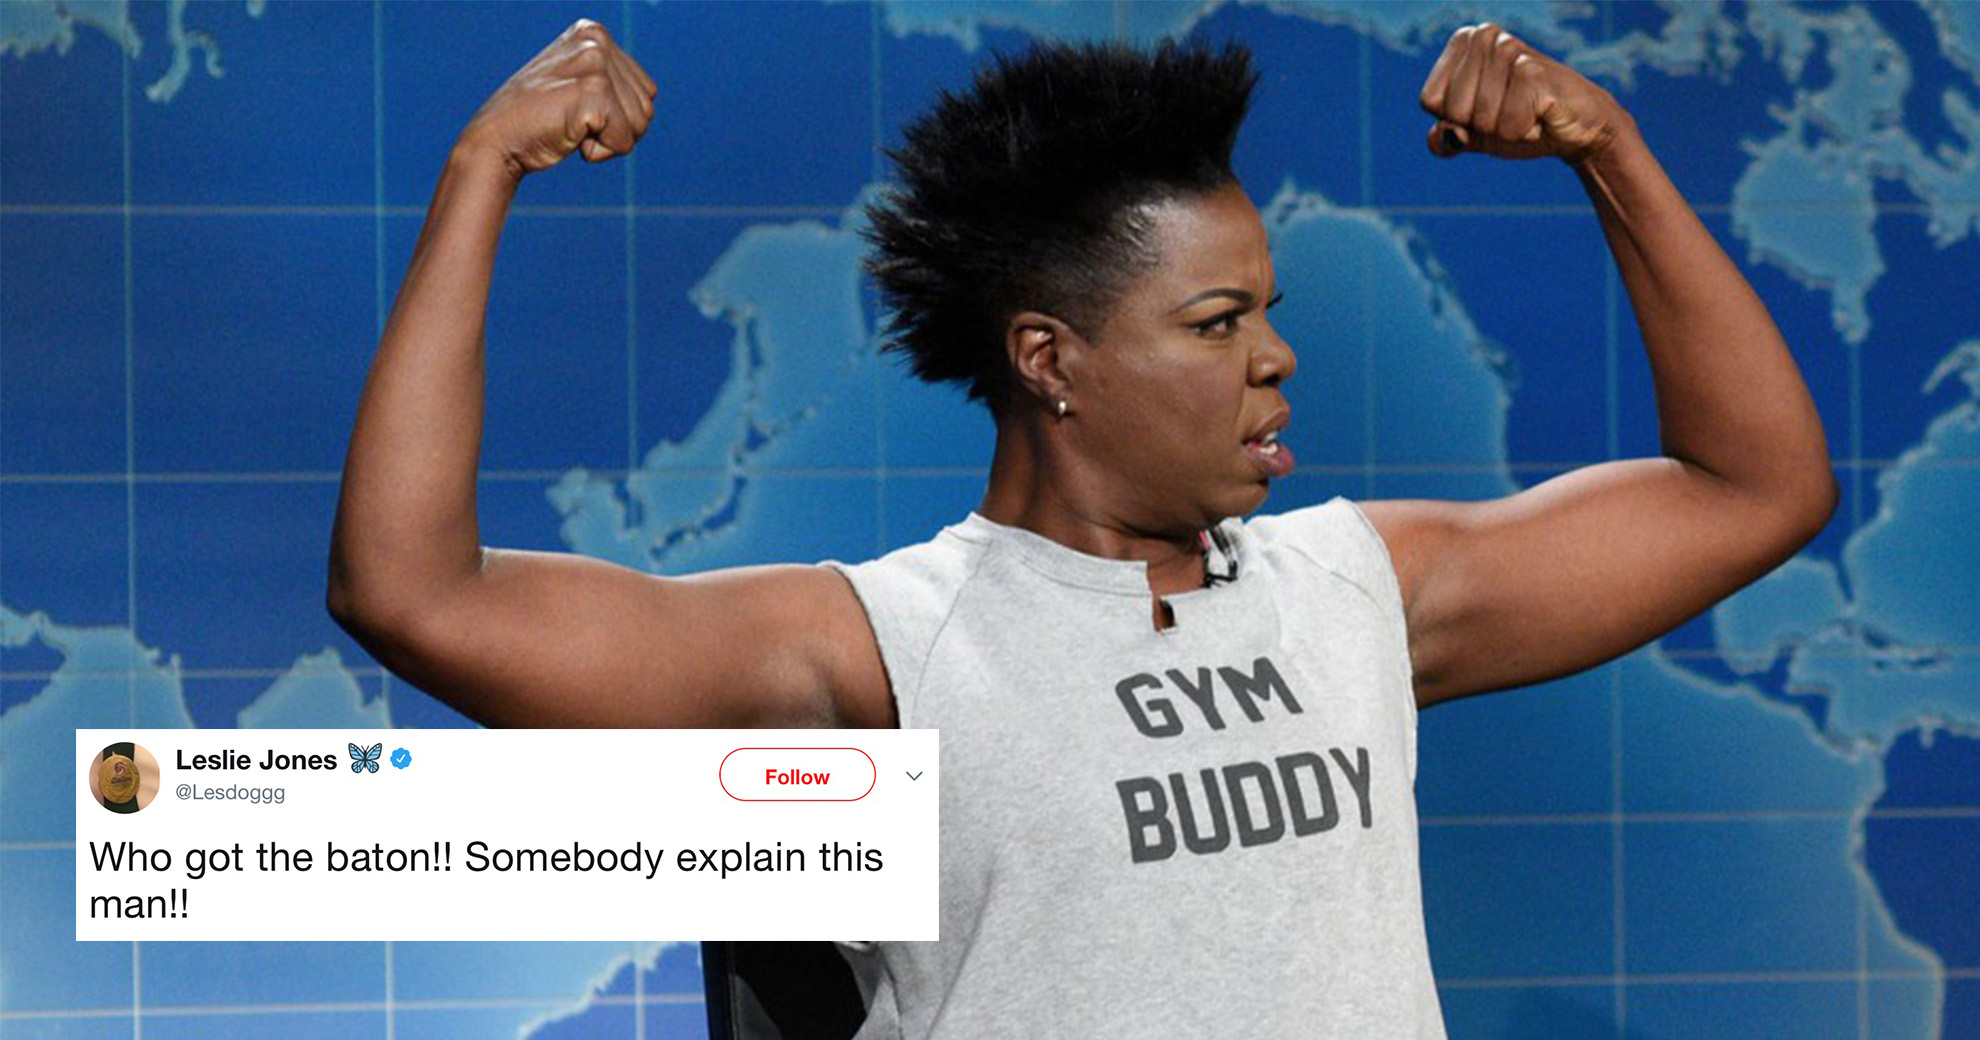 Leslie Jones Has Begun Live-Tweeting The Olympics—And The Games Are Officially On